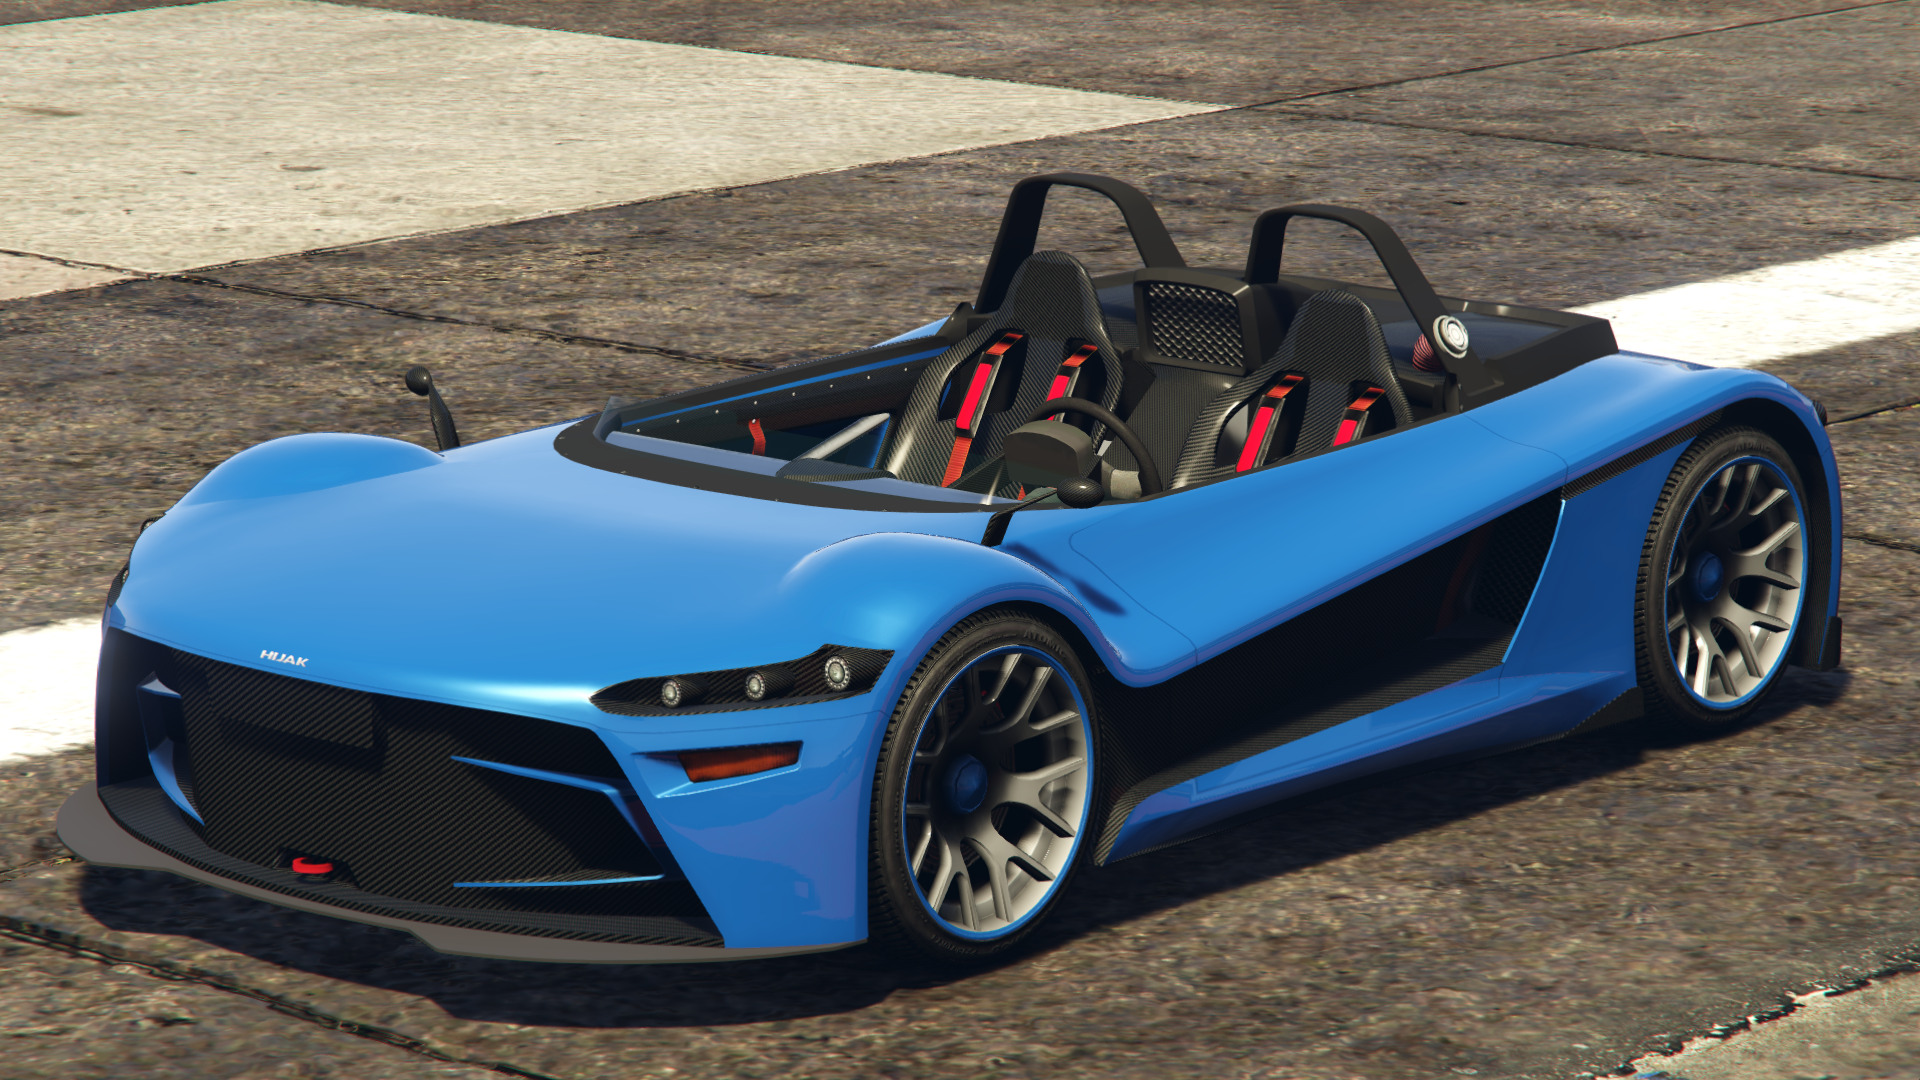 New GTA Online Car Released